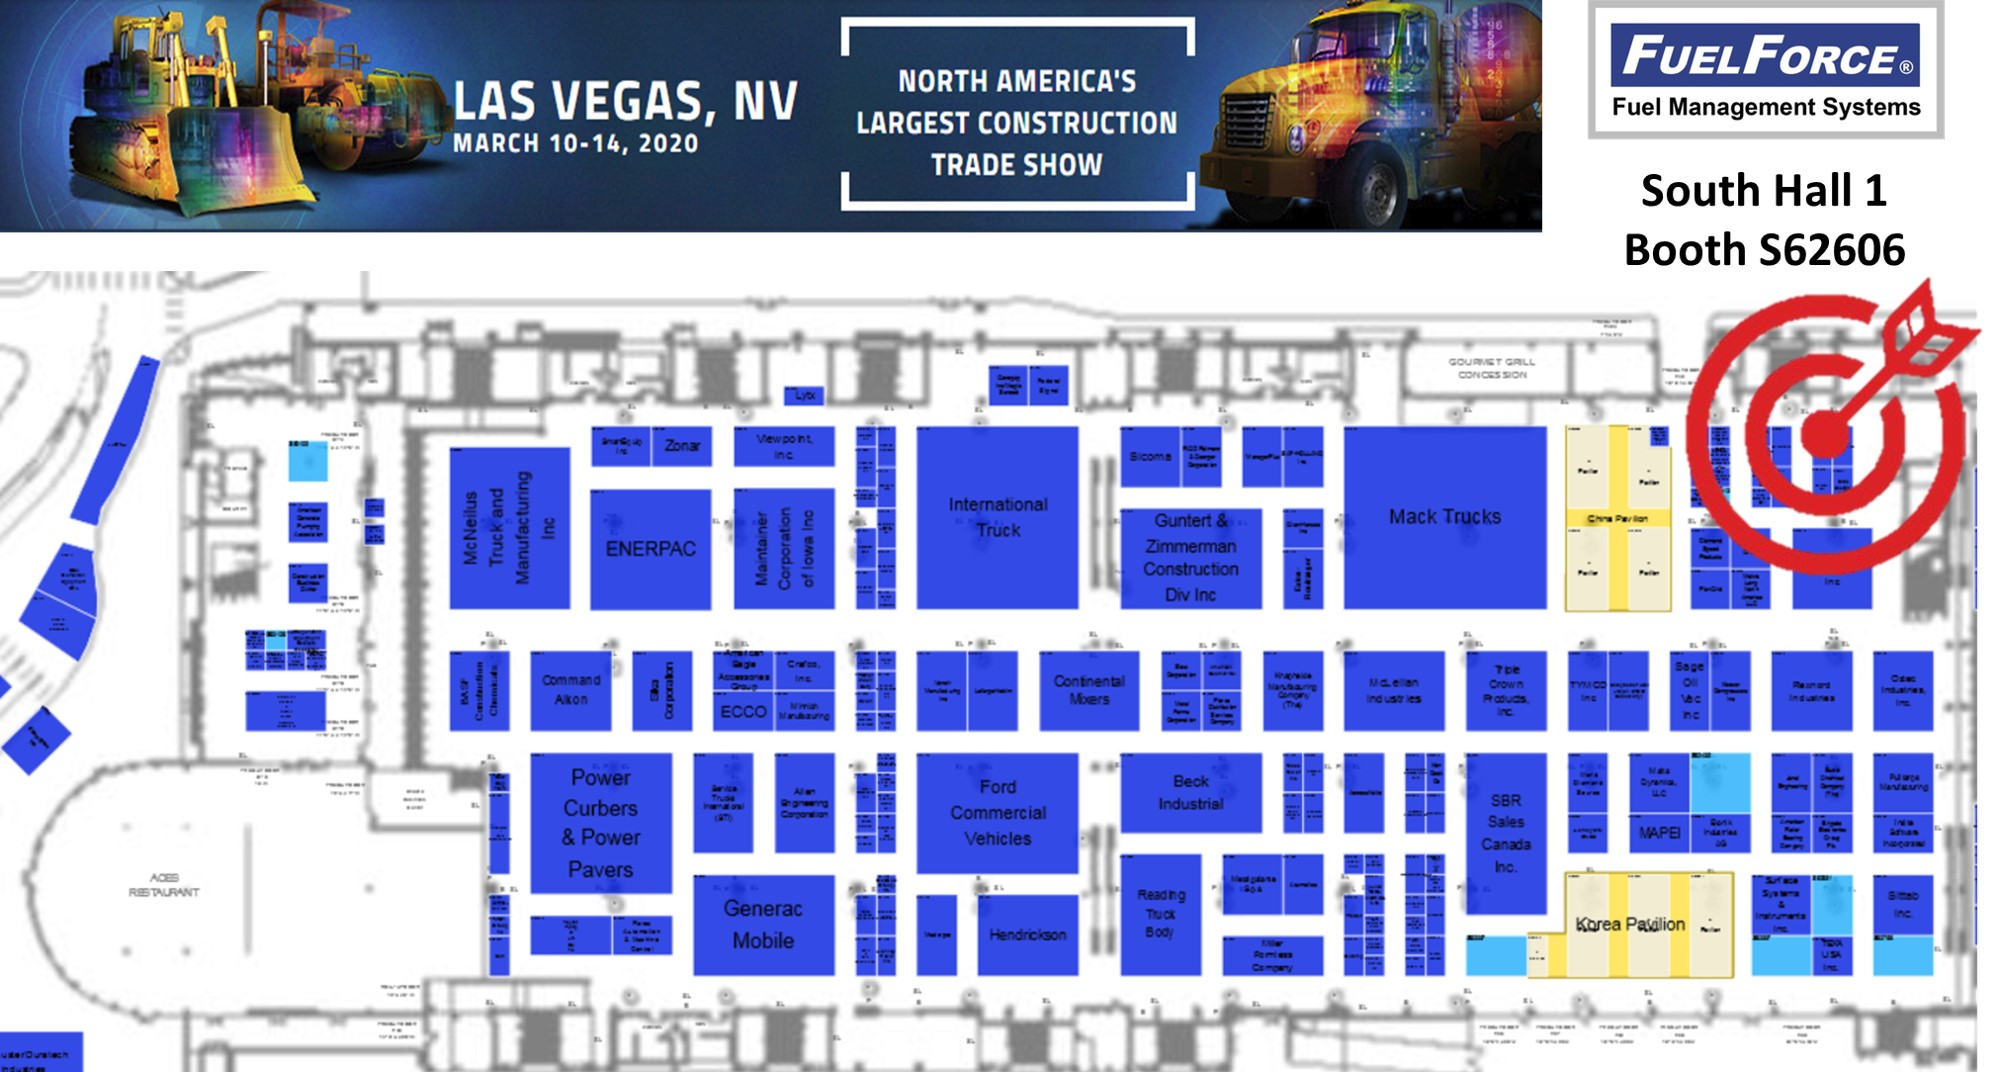 Visit Us in the South Hall 1st Floor, Booth S62606